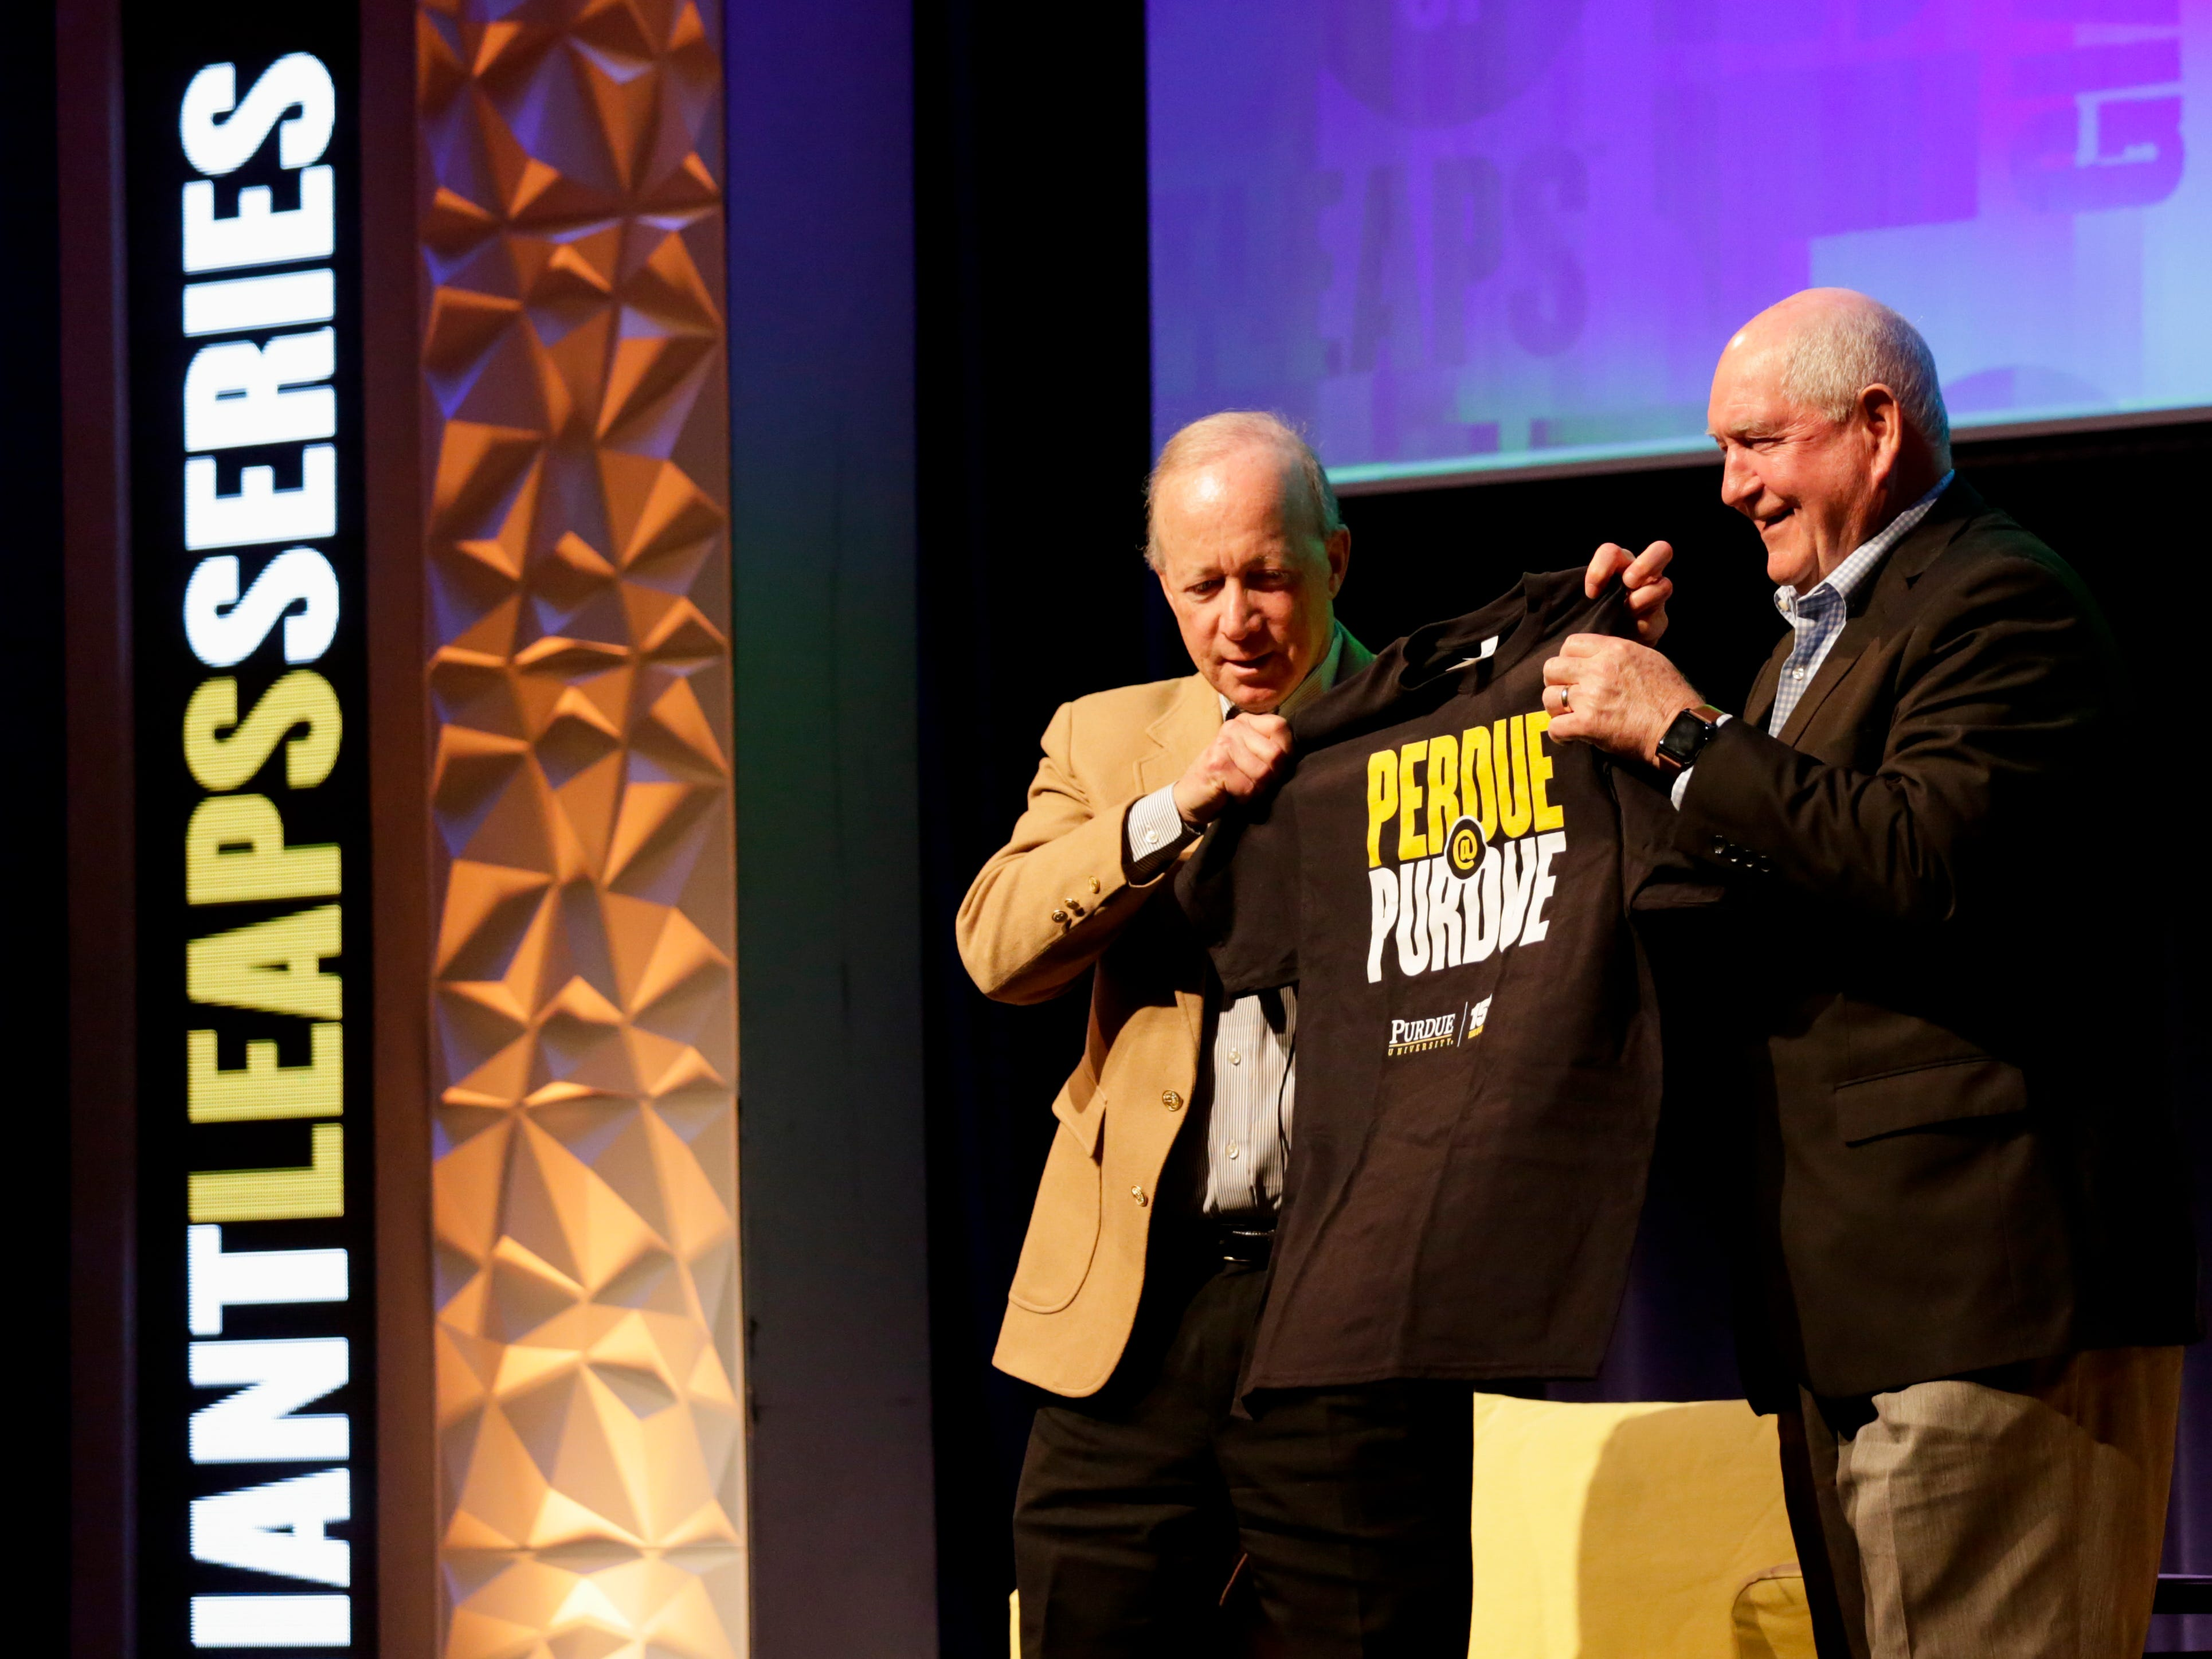 Purdue University president Mitch Daniels presents  U.S. Secretary of Agriculture Sonny Perdue with a t-shirt after speaking with him at an Ag Week Q&A conversation, Tuesday, April 2, 2019, at Purdue University in West Lafayette.